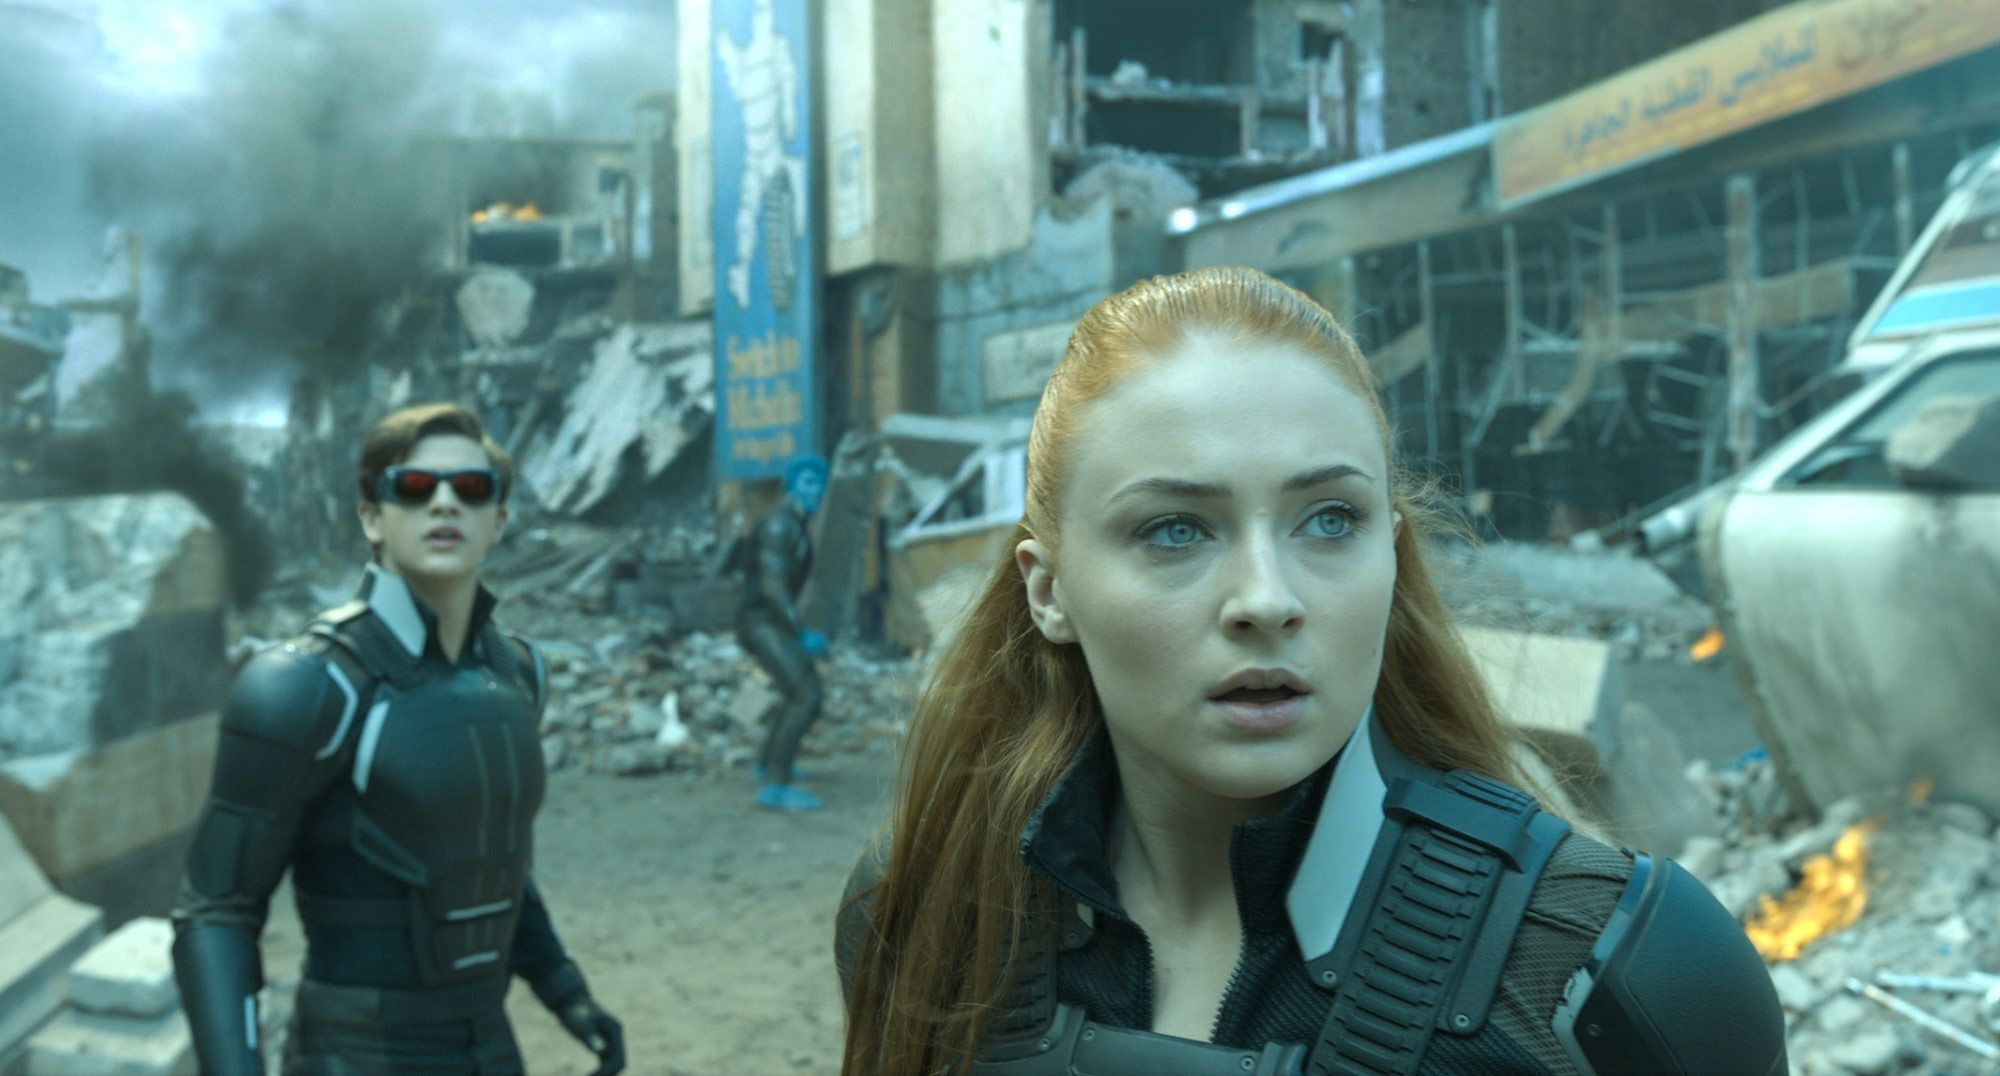 'X-Men: Apocalypse' Underutilizes Characters, Lacks Dynamic Dialogue | The Emory Wheel